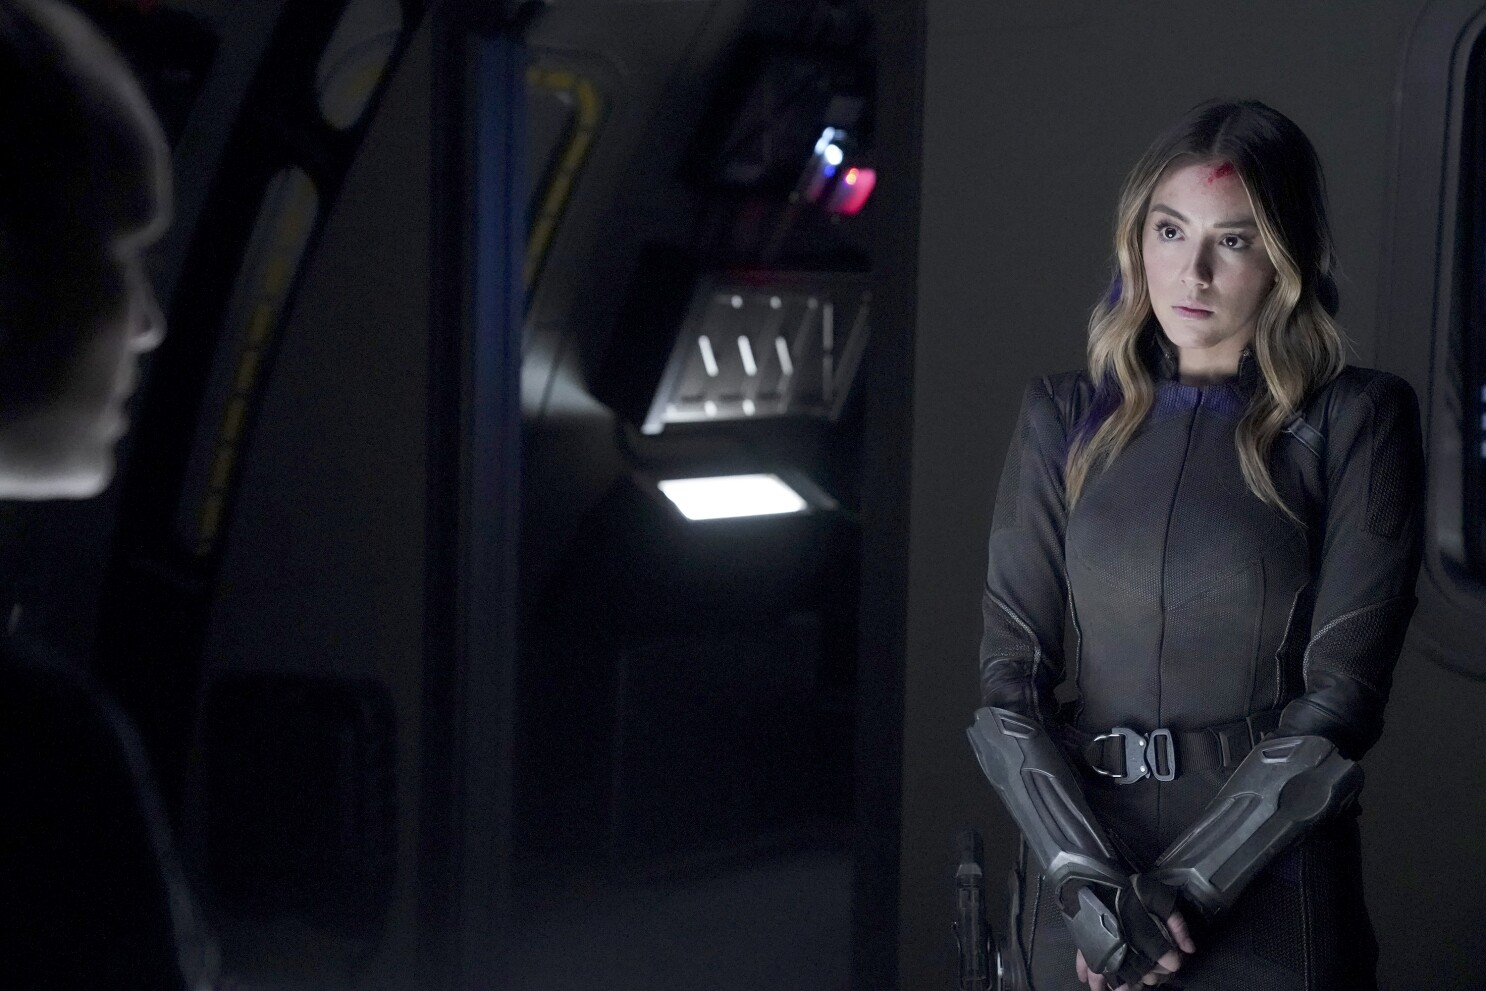 What's on TV Friday, Aug. 2: 'Marvels Agents of S.H.I.E.L.D.' on ABC